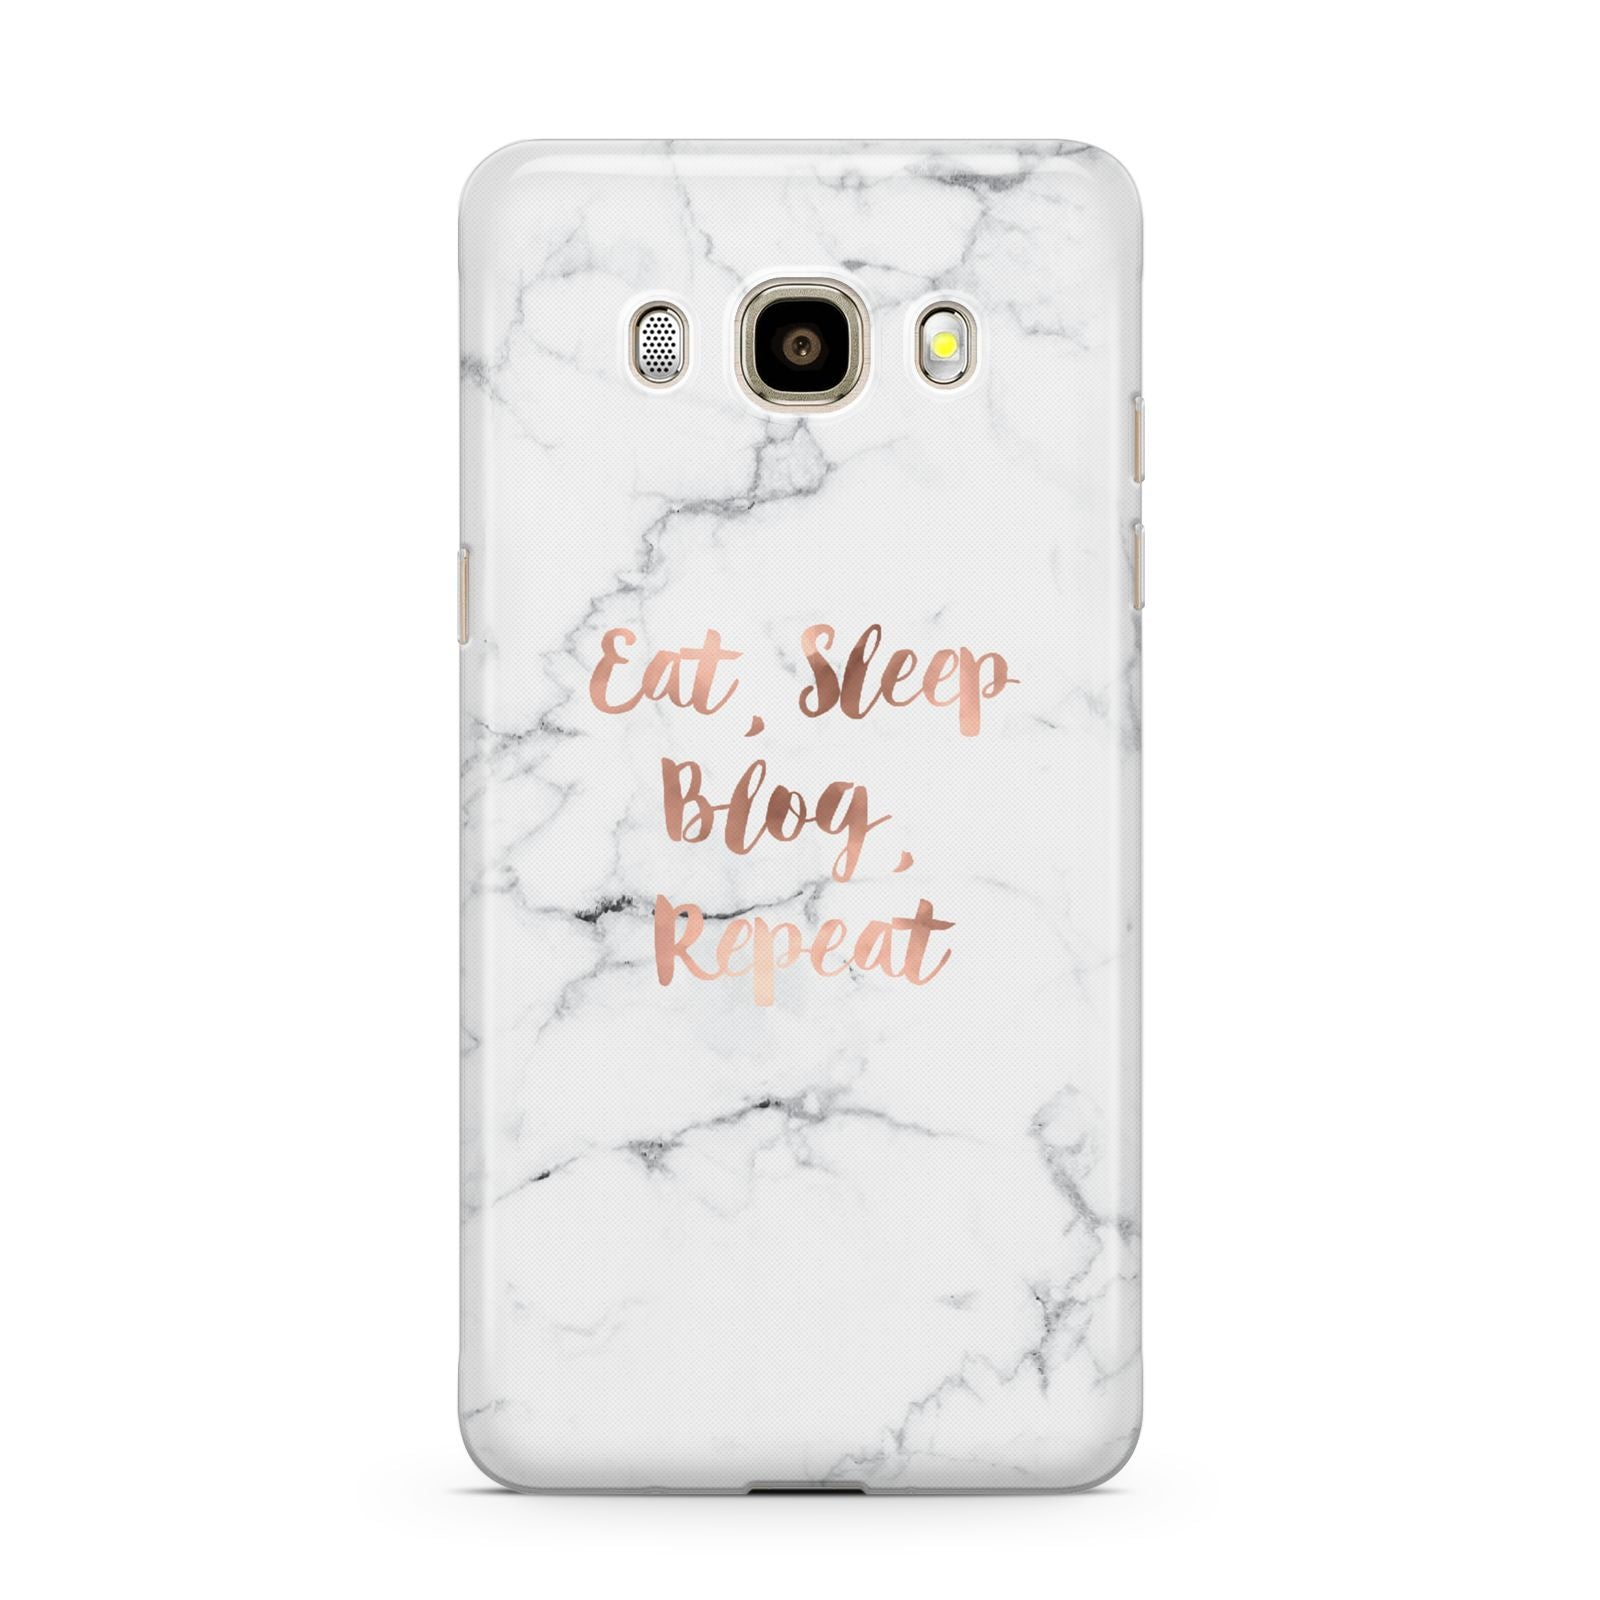 Eat Sleep Blog Repeat Marble Effect Samsung Galaxy J7 2016 Case on gold phone